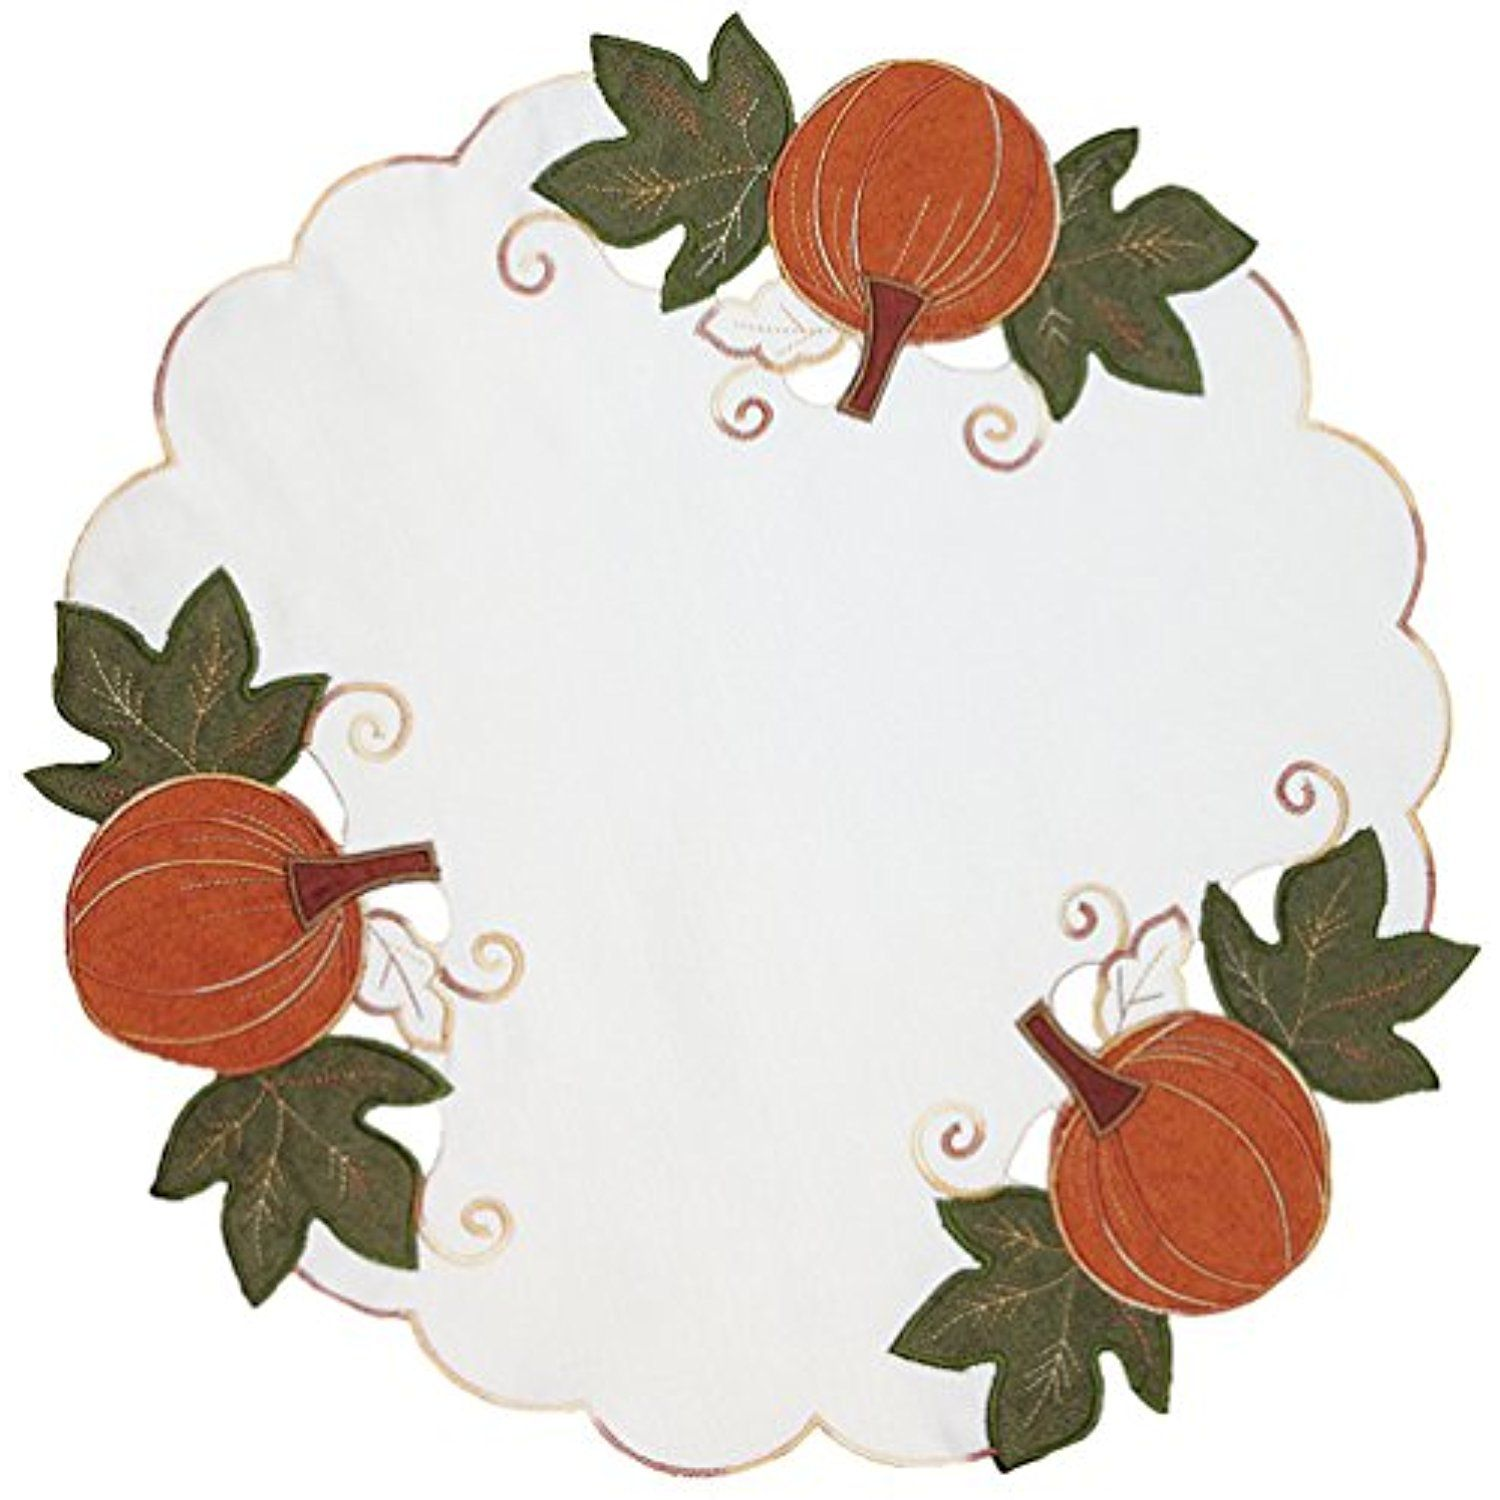 Xia Home Fashions Pumpkin Patch Embroidered Cutwork Linens Collection Fall Doilies 16 Inch Round Set Of 4 You Can Get Fashion Pumpkin Cutwork Embroidered